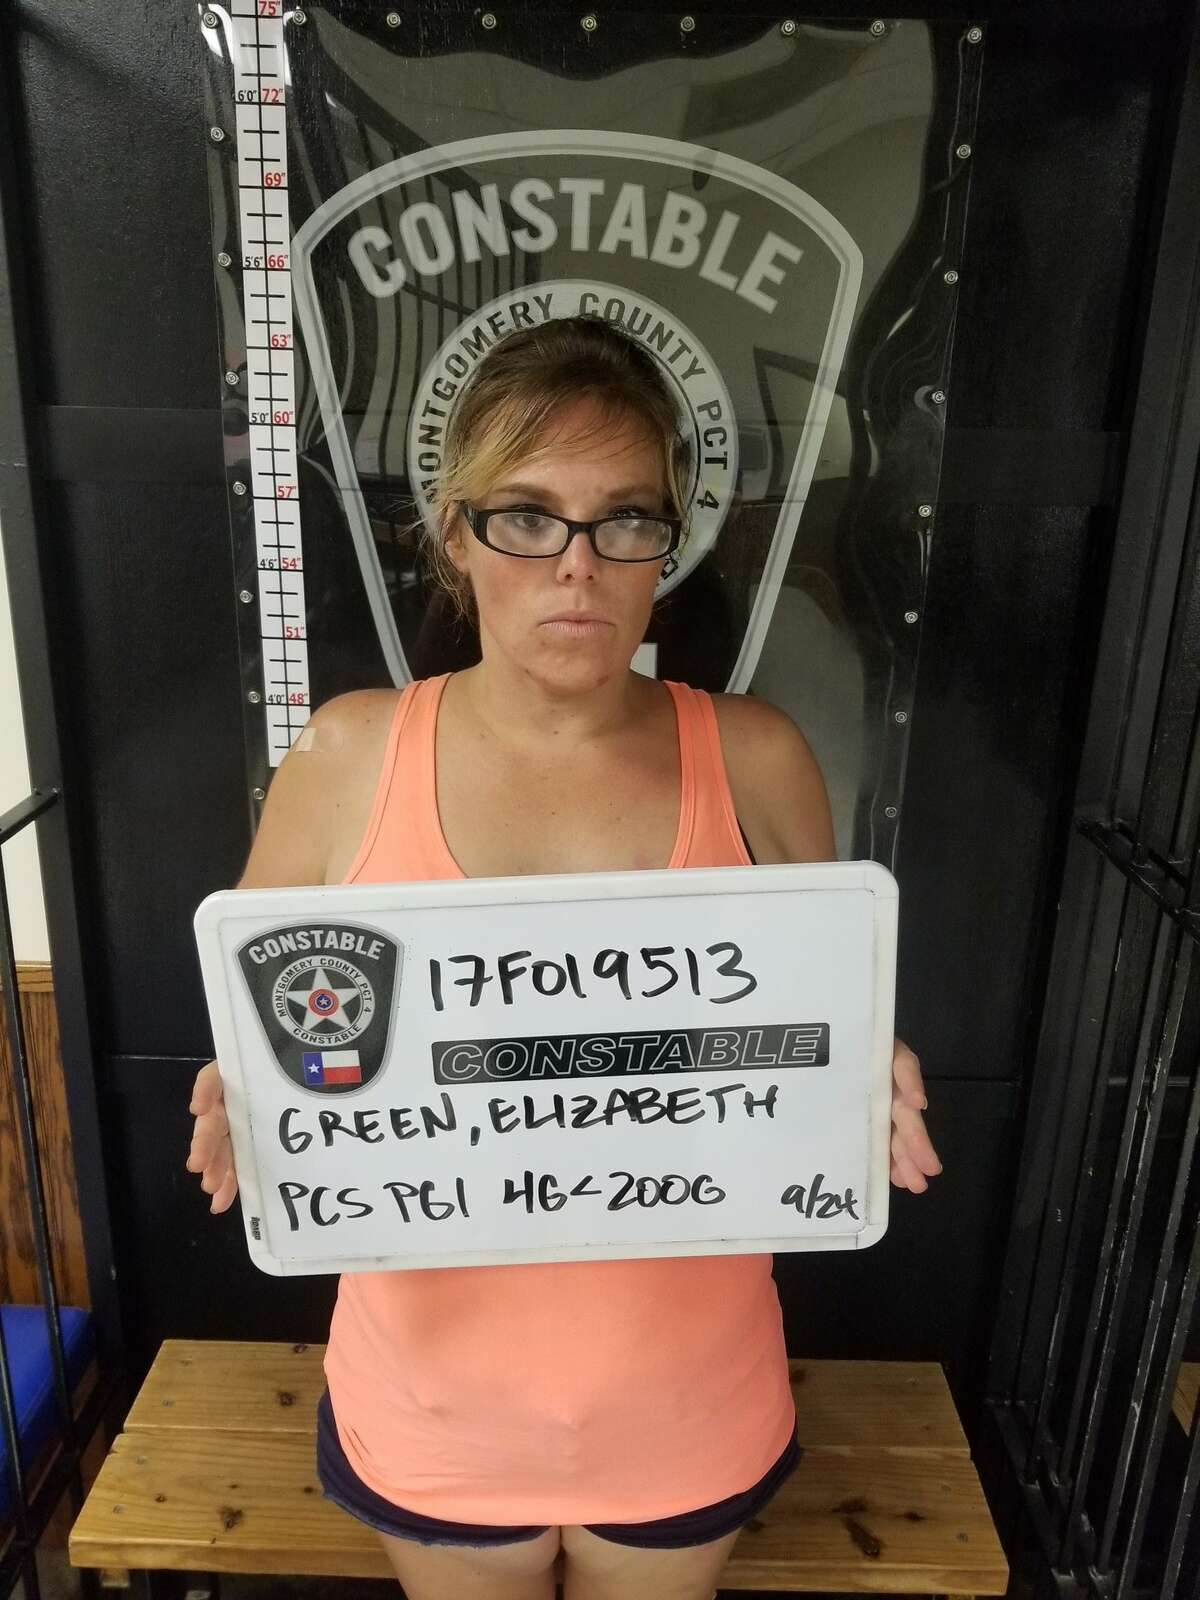 Elizabeth Green, 32, is charged with possession of a controlled substance in Montgomery County after her Sept. 24, 2017 arrest near Cleveland.